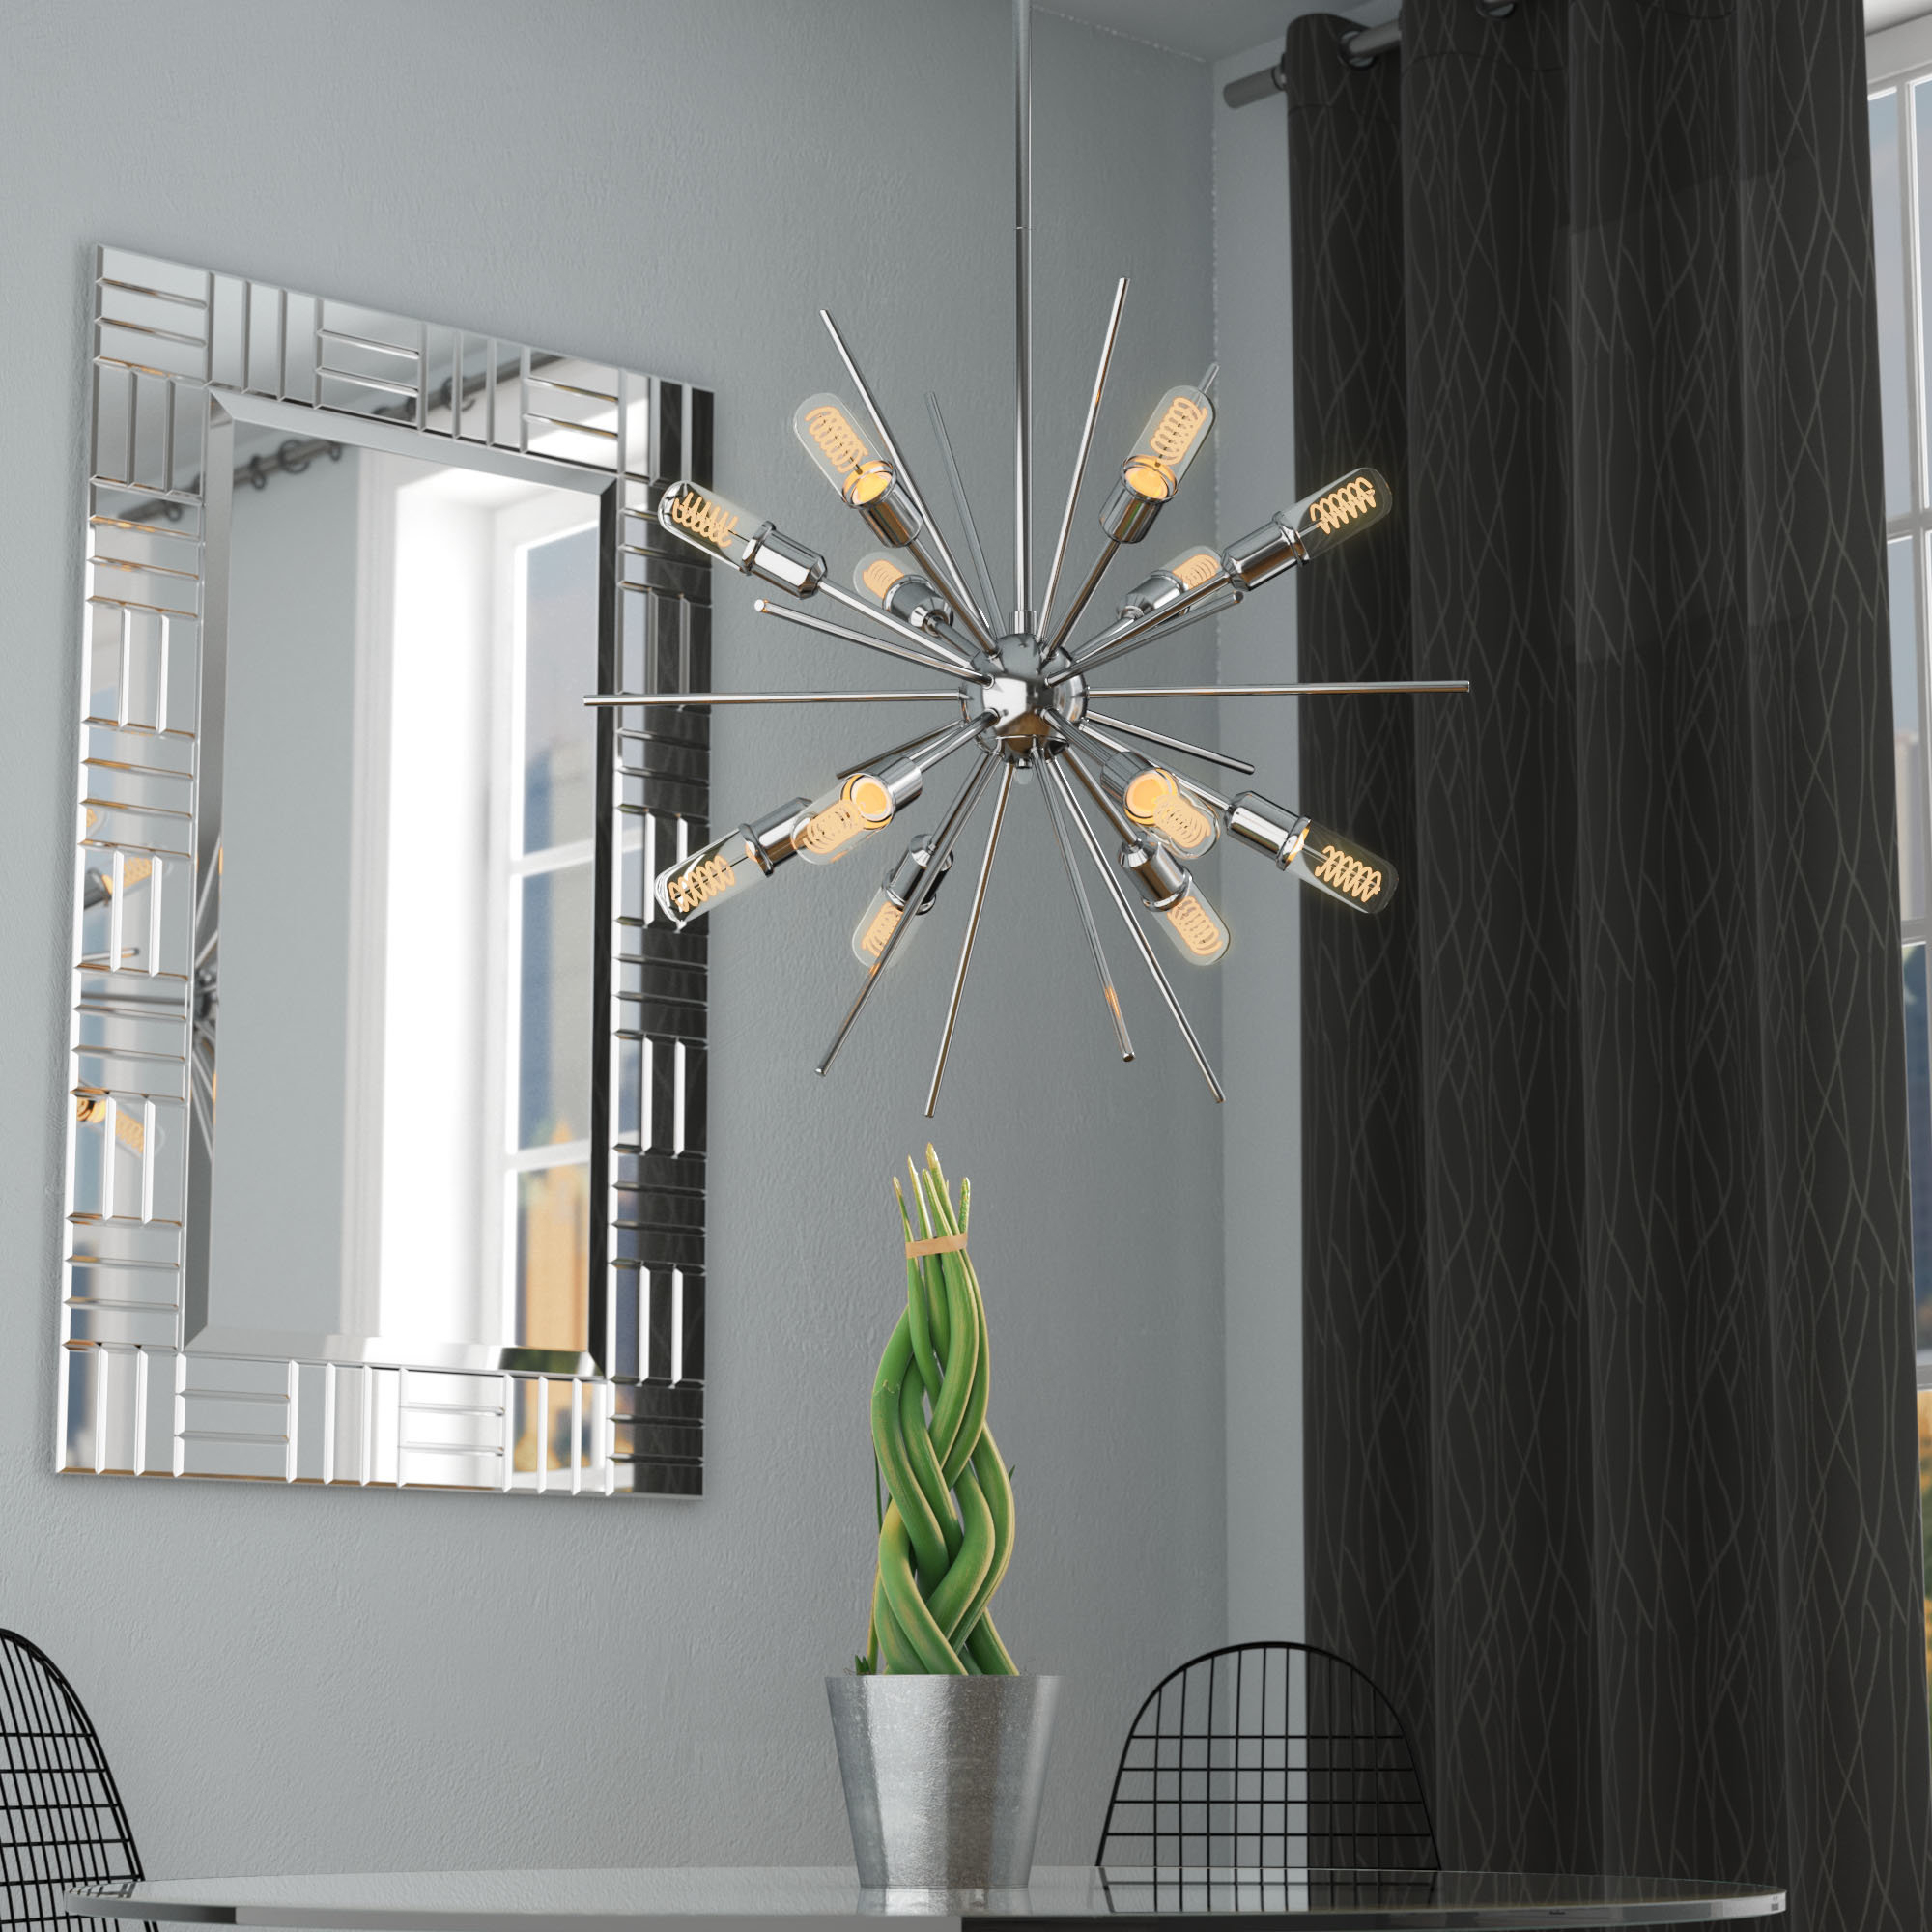 Corona 12 Light Sputnik Chandelier Regarding Famous Corona 12 Light Sputnik Chandeliers (Gallery 2 of 20)